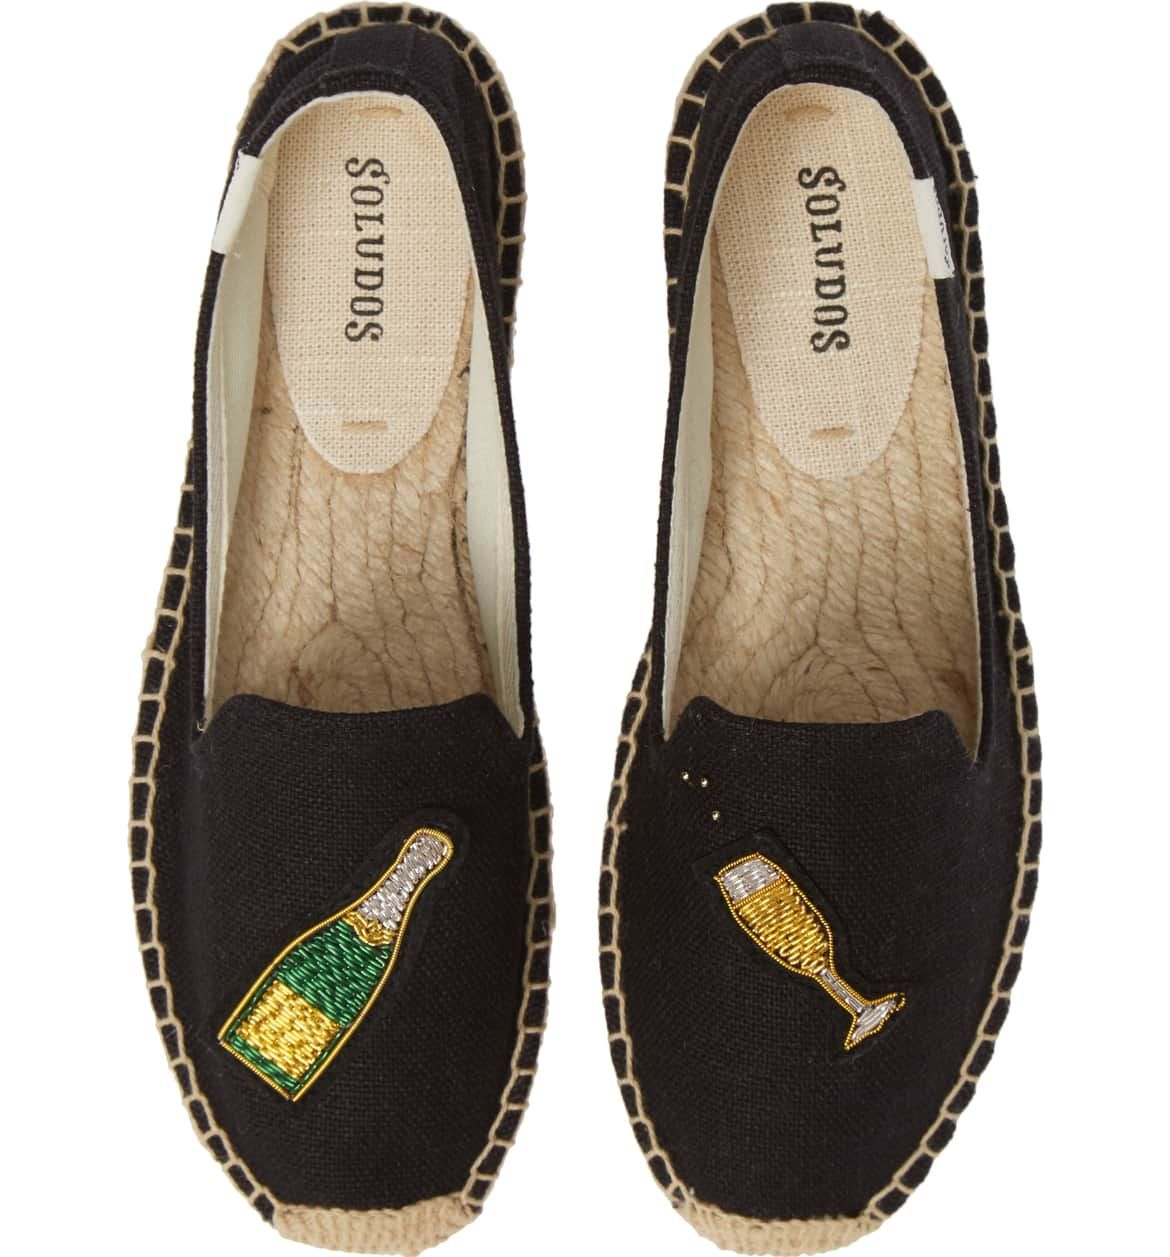 078e48d37a Soludos Cheers Espadrille with champagne bottle BLACK